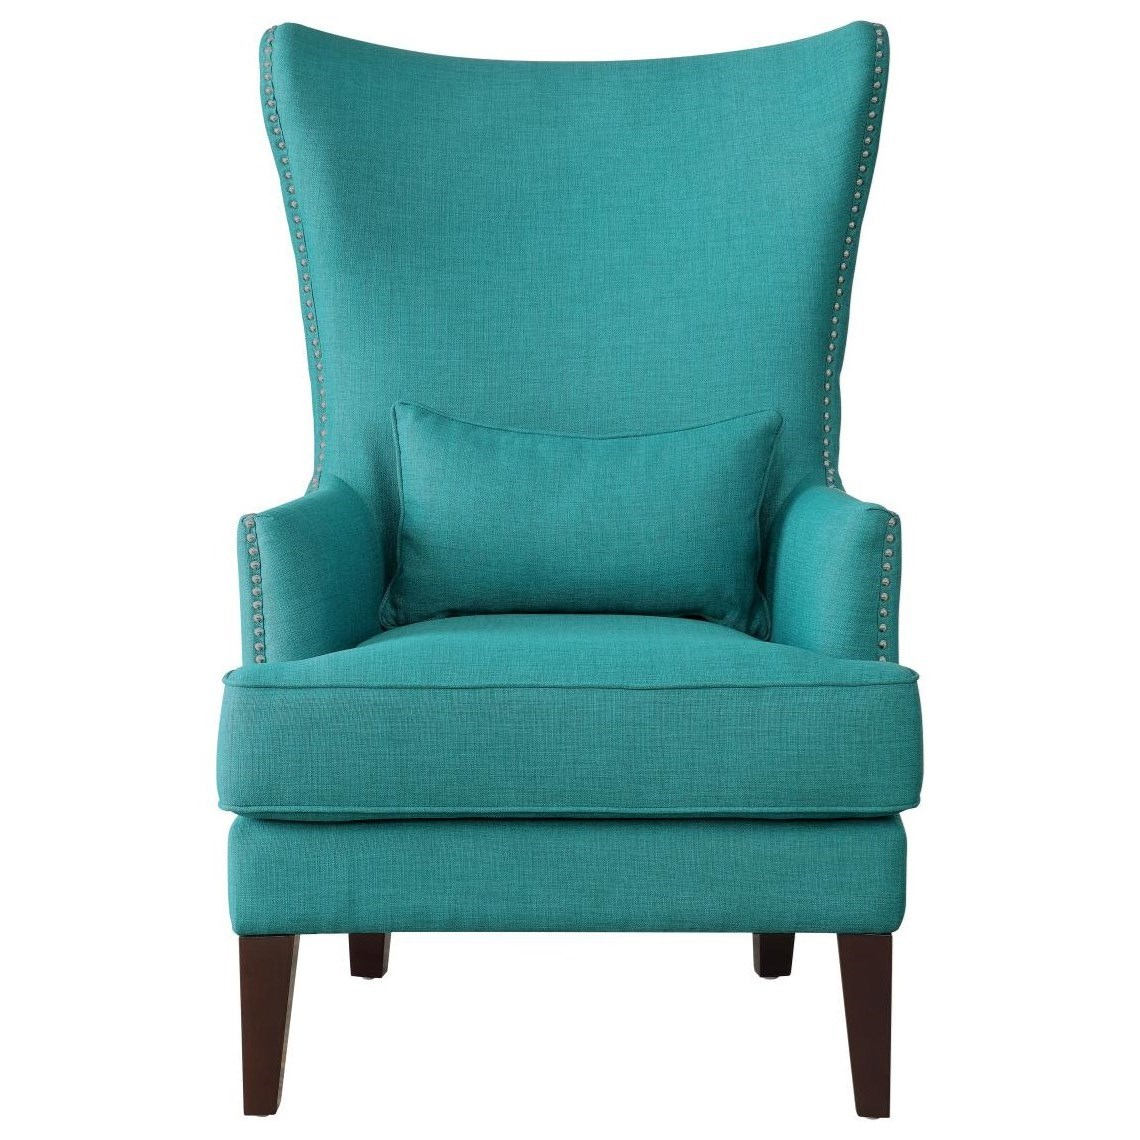 Avina Accent Chair by Homelegance at Beck's Furniture